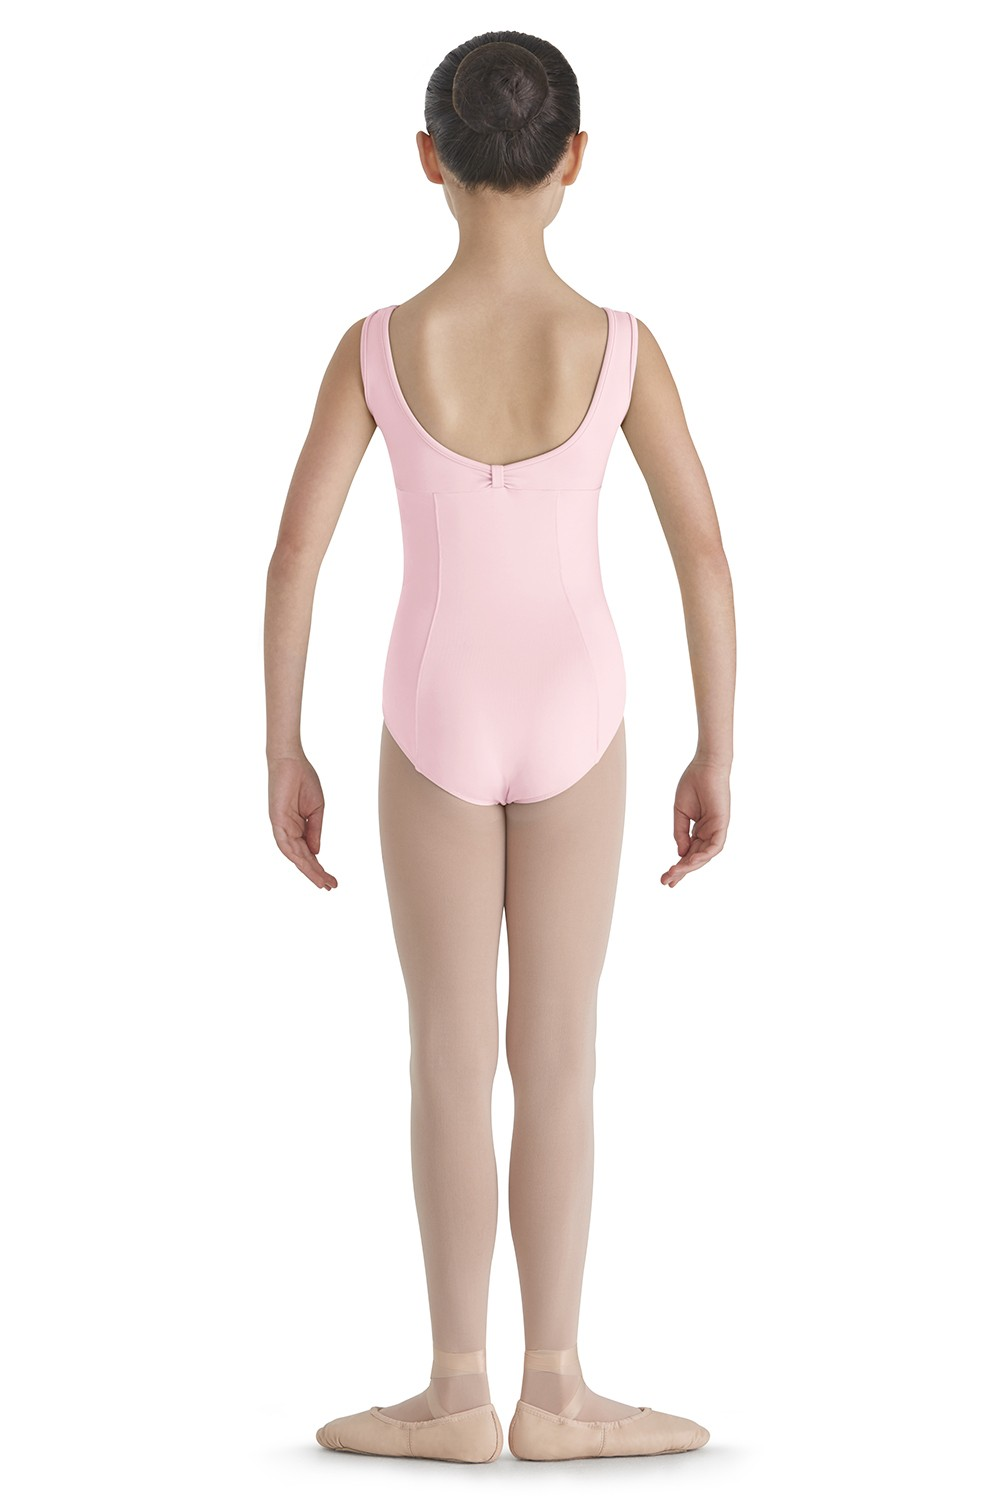 Itzel Girls Tank Leotards